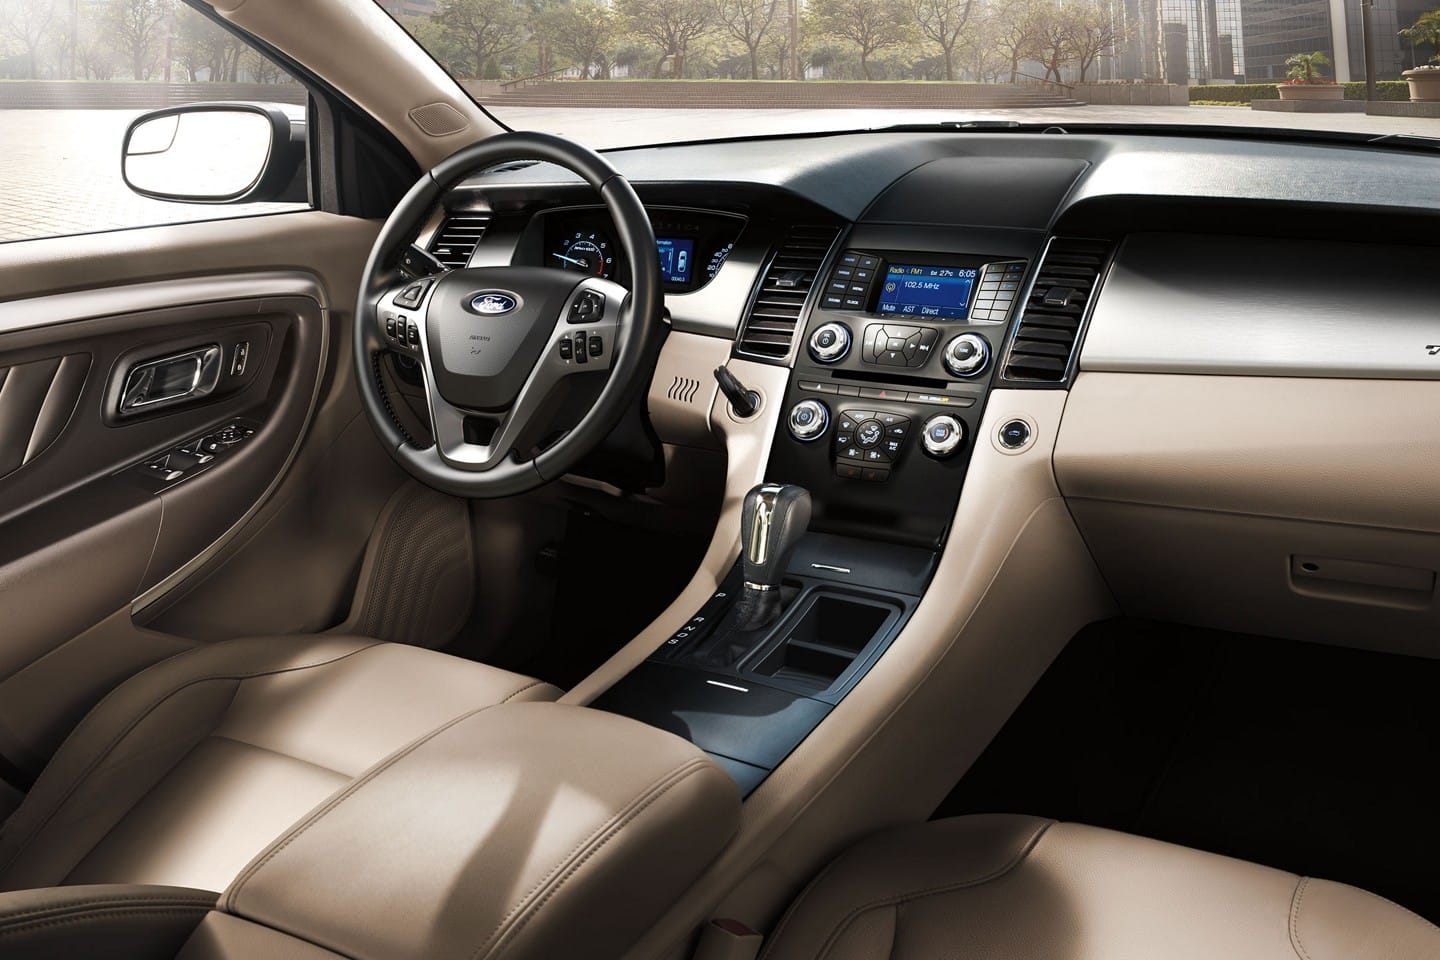 Interior of the 2019 Ford Taurus